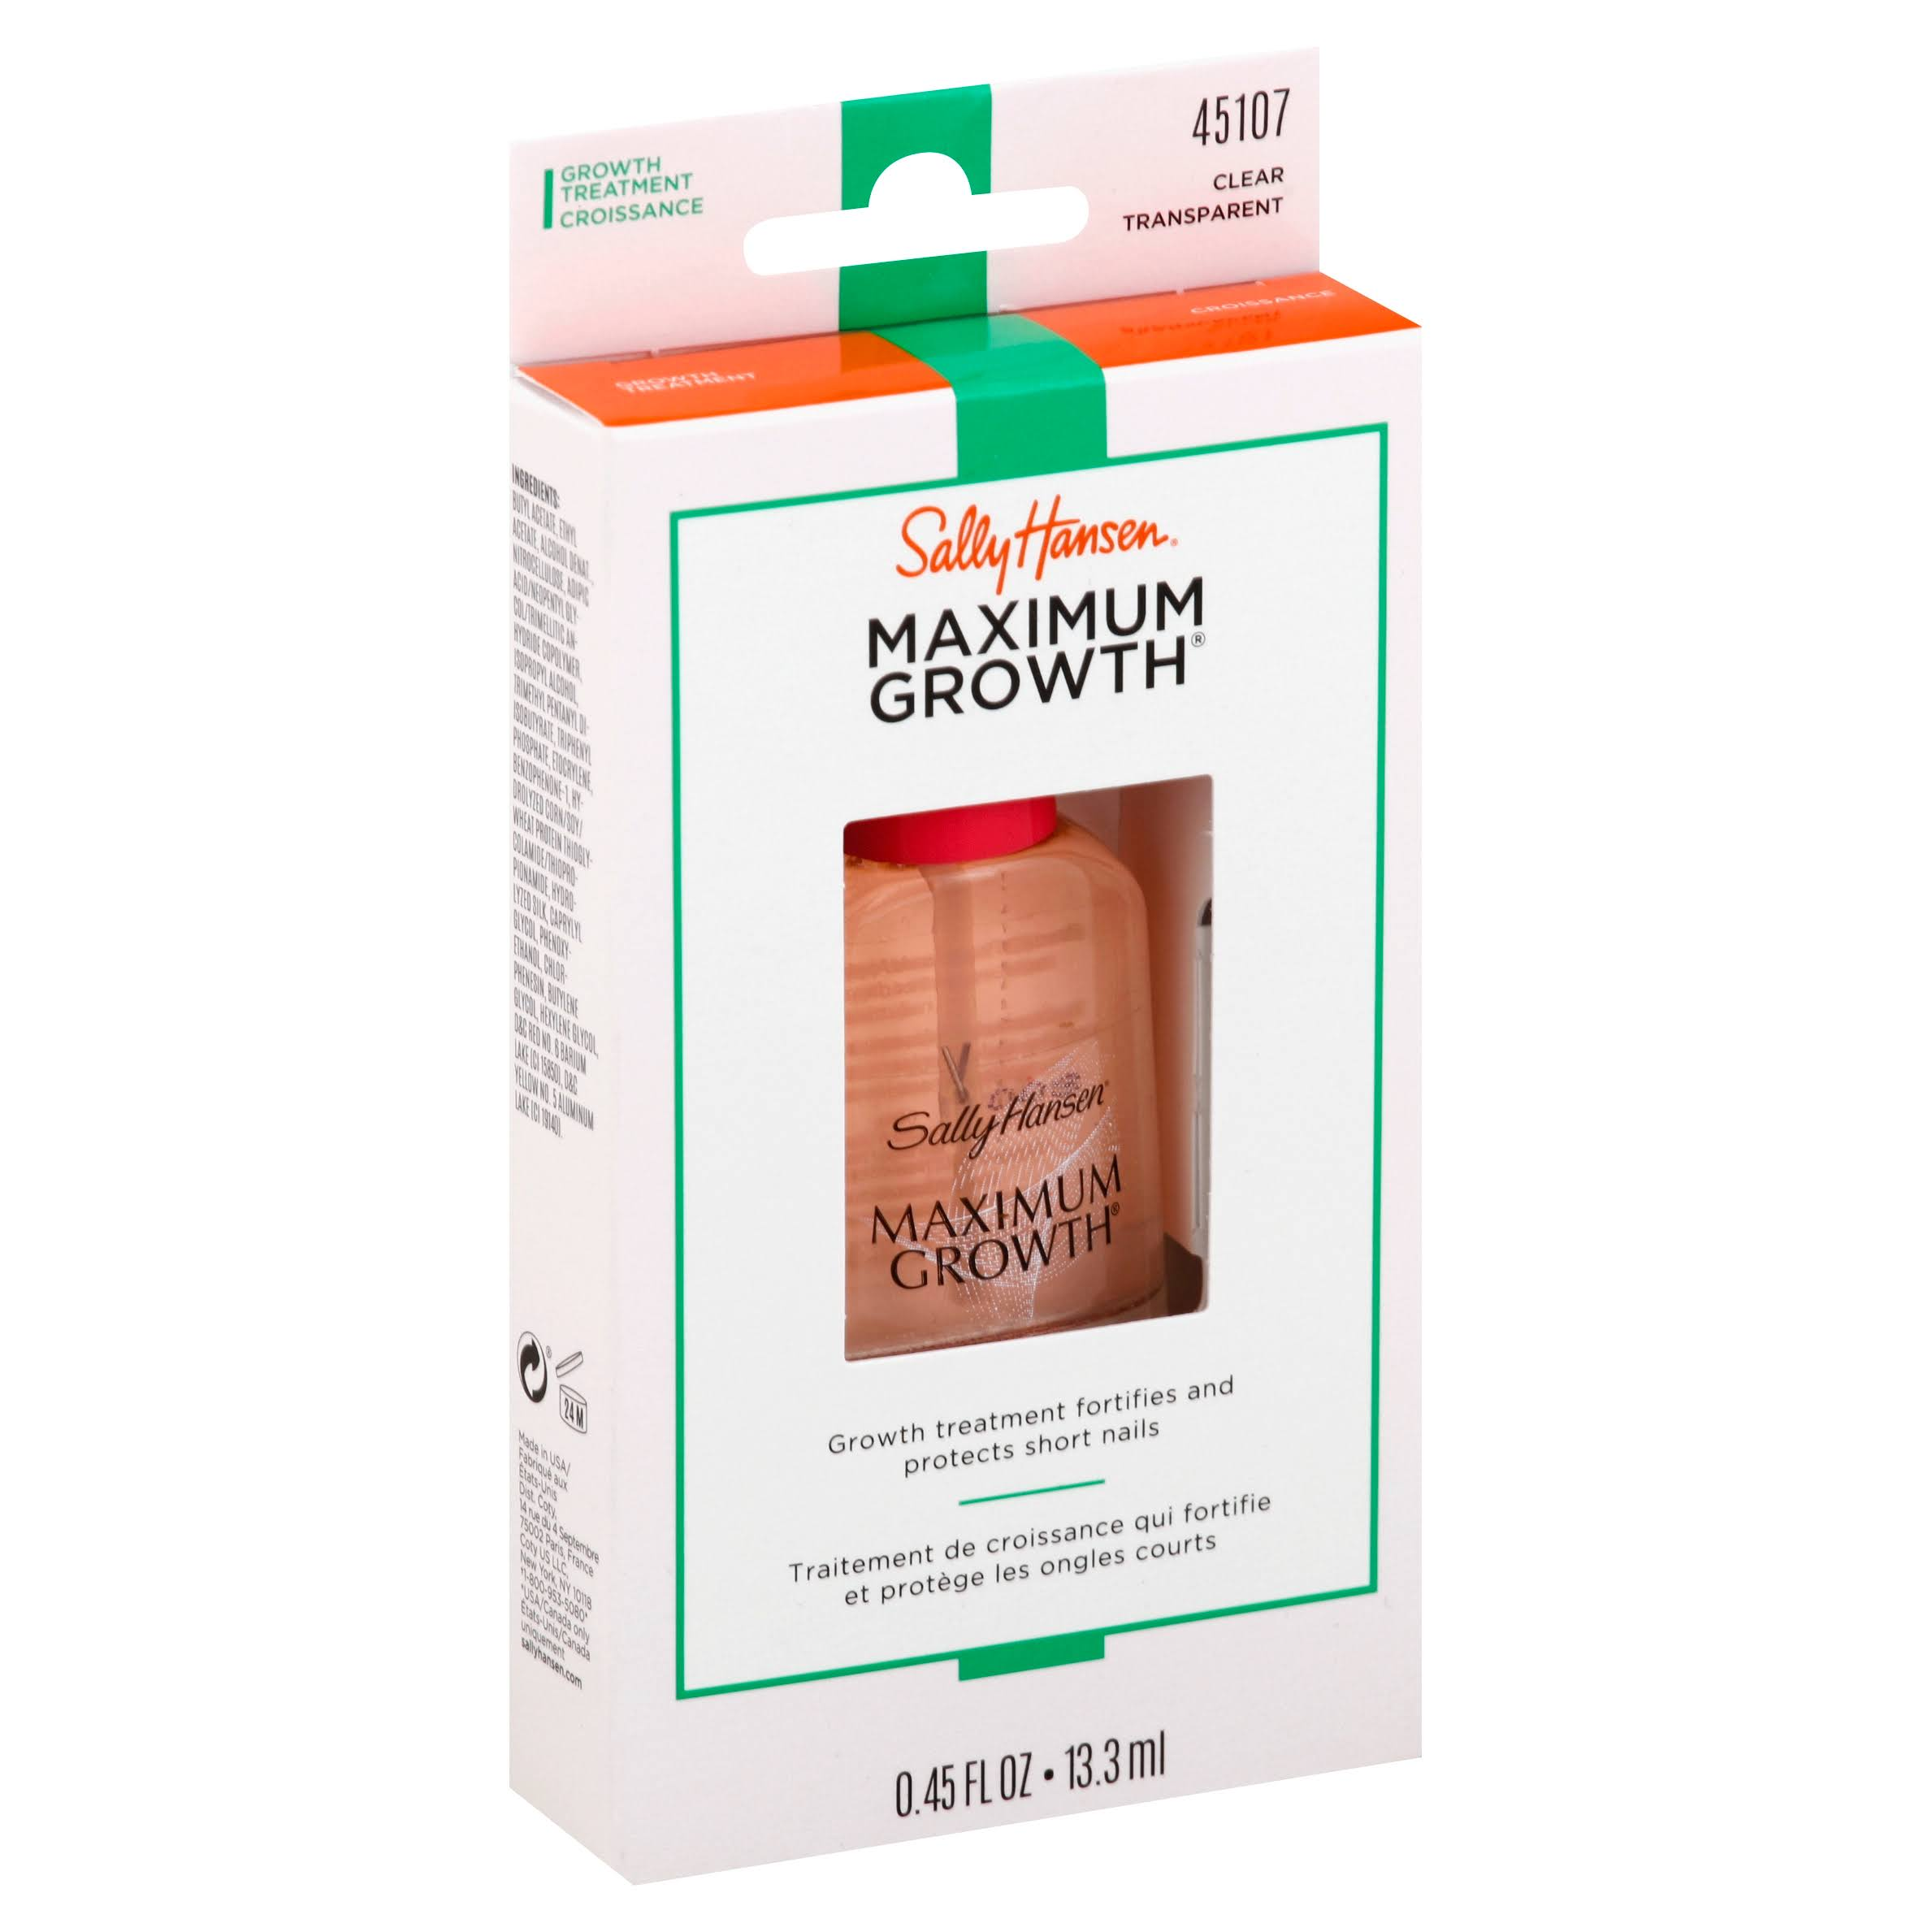 Sally Hansen Max Growth Nail Treatment - 13.3ml